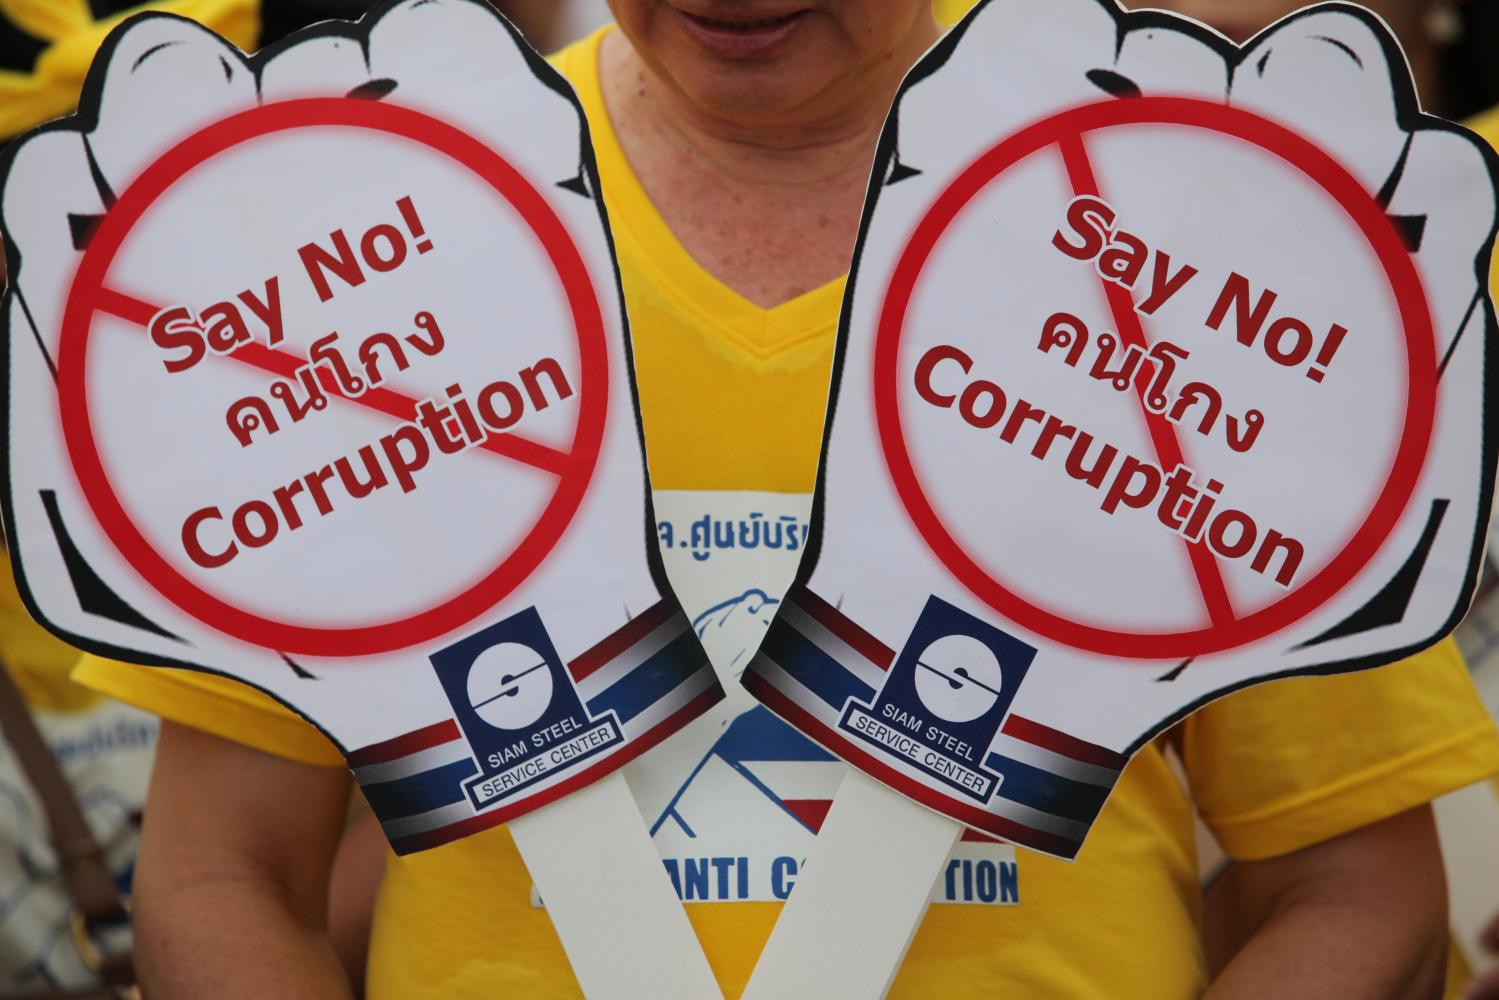 People join in anti-corruption activities at Sanam Luang in the capital in this file photo dated September 2016.Wichan Charoenkiatpakul